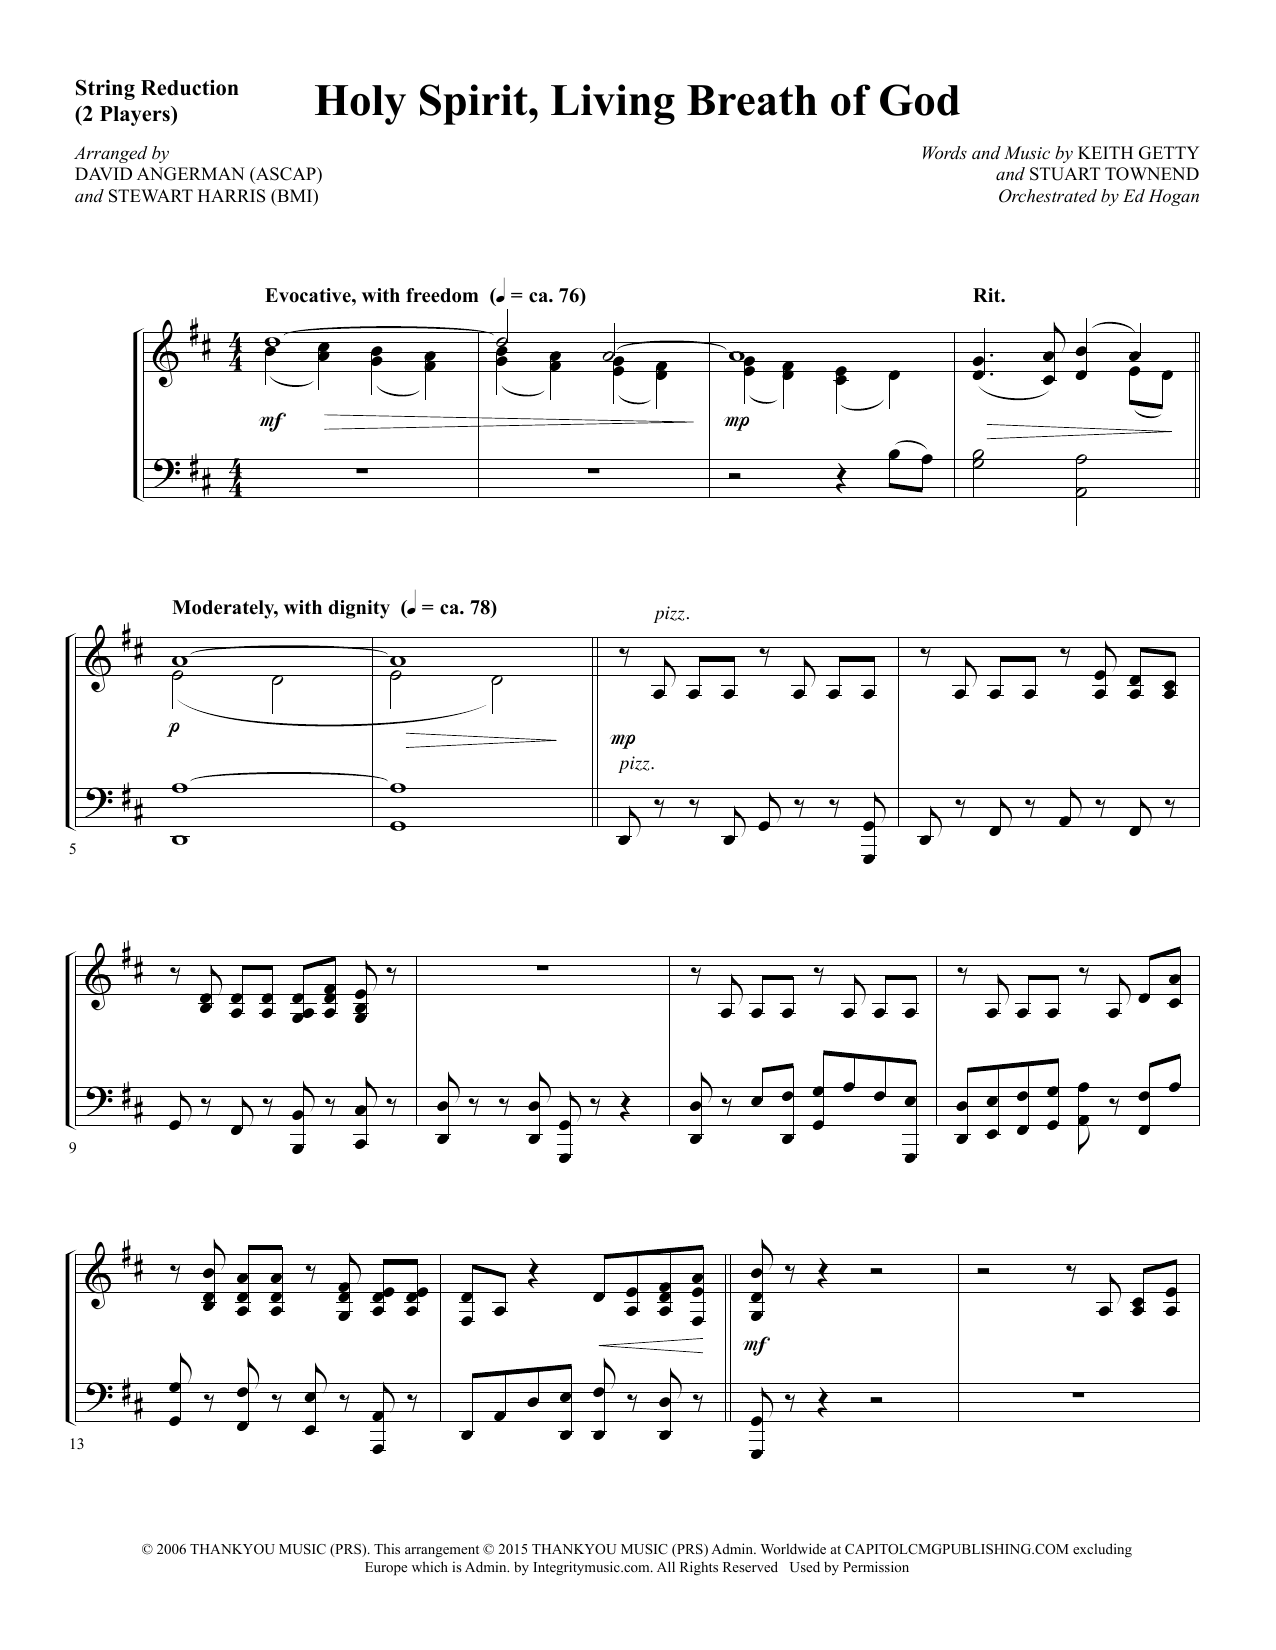 Holy Spirit, Living Breath of God - Keyboard String Reduction Sheet Music